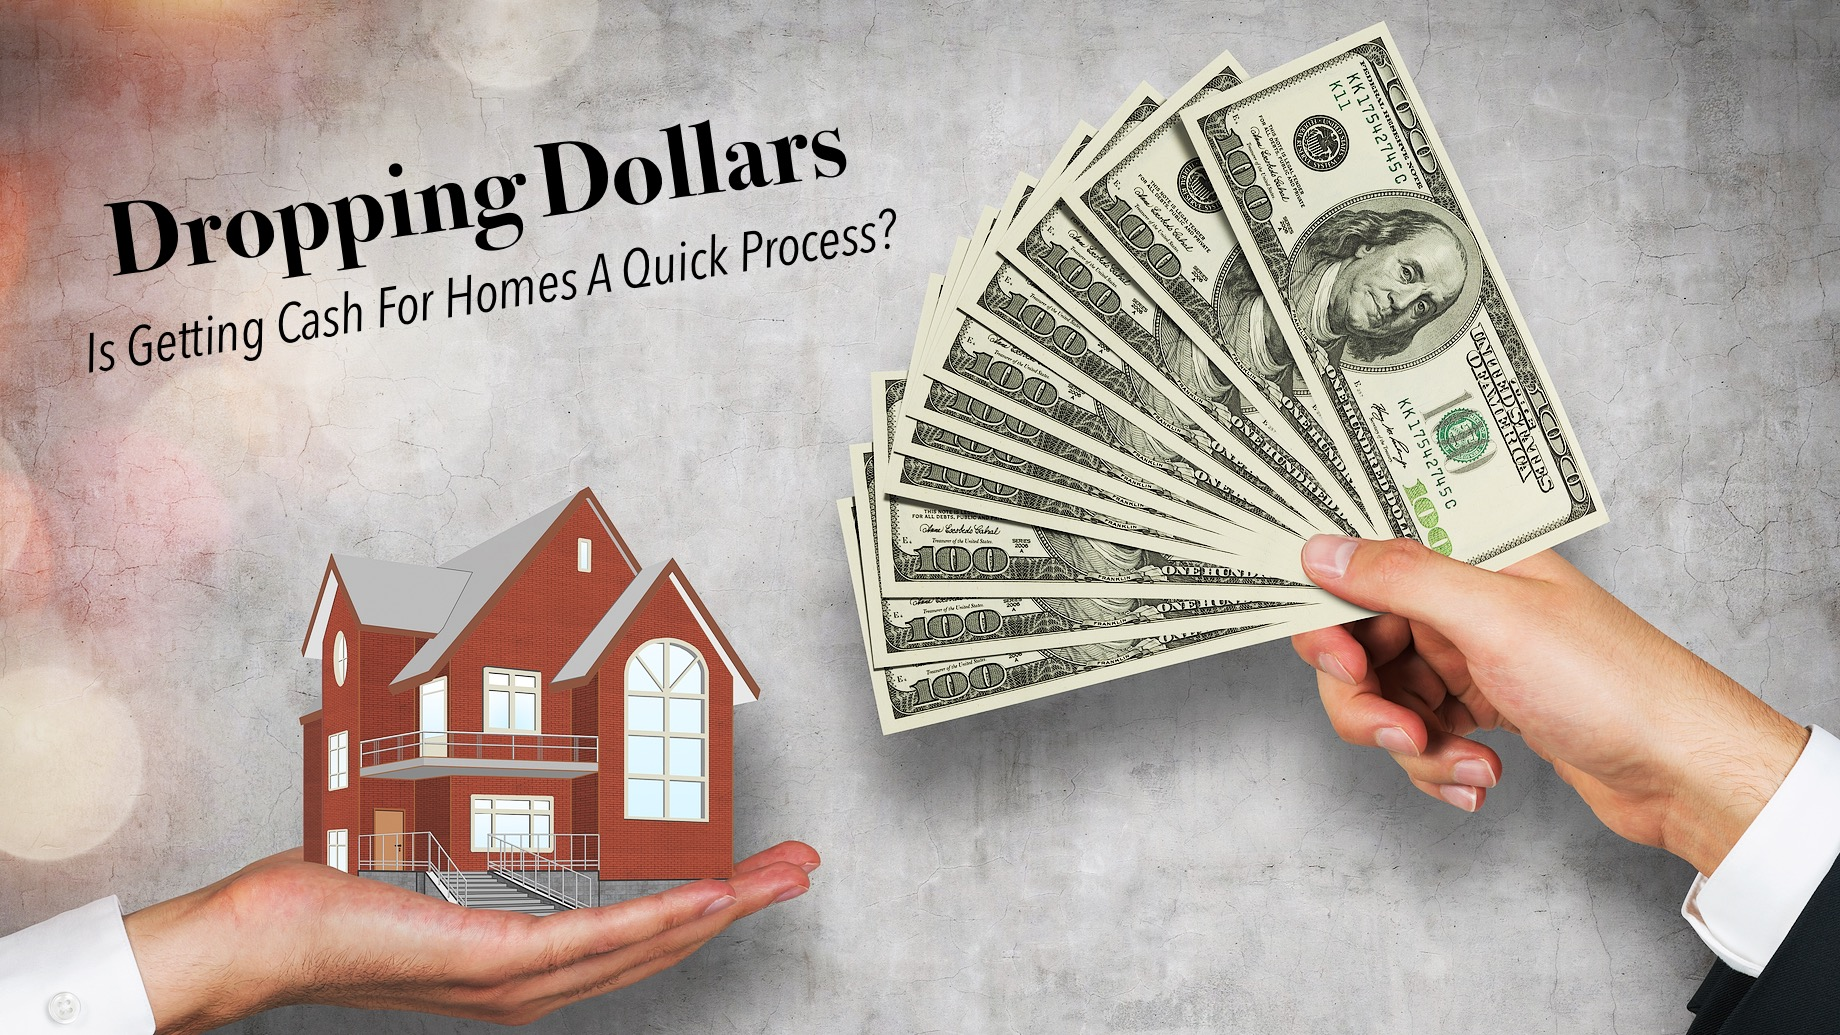 Is Getting Cash For Homes A Quick Process?